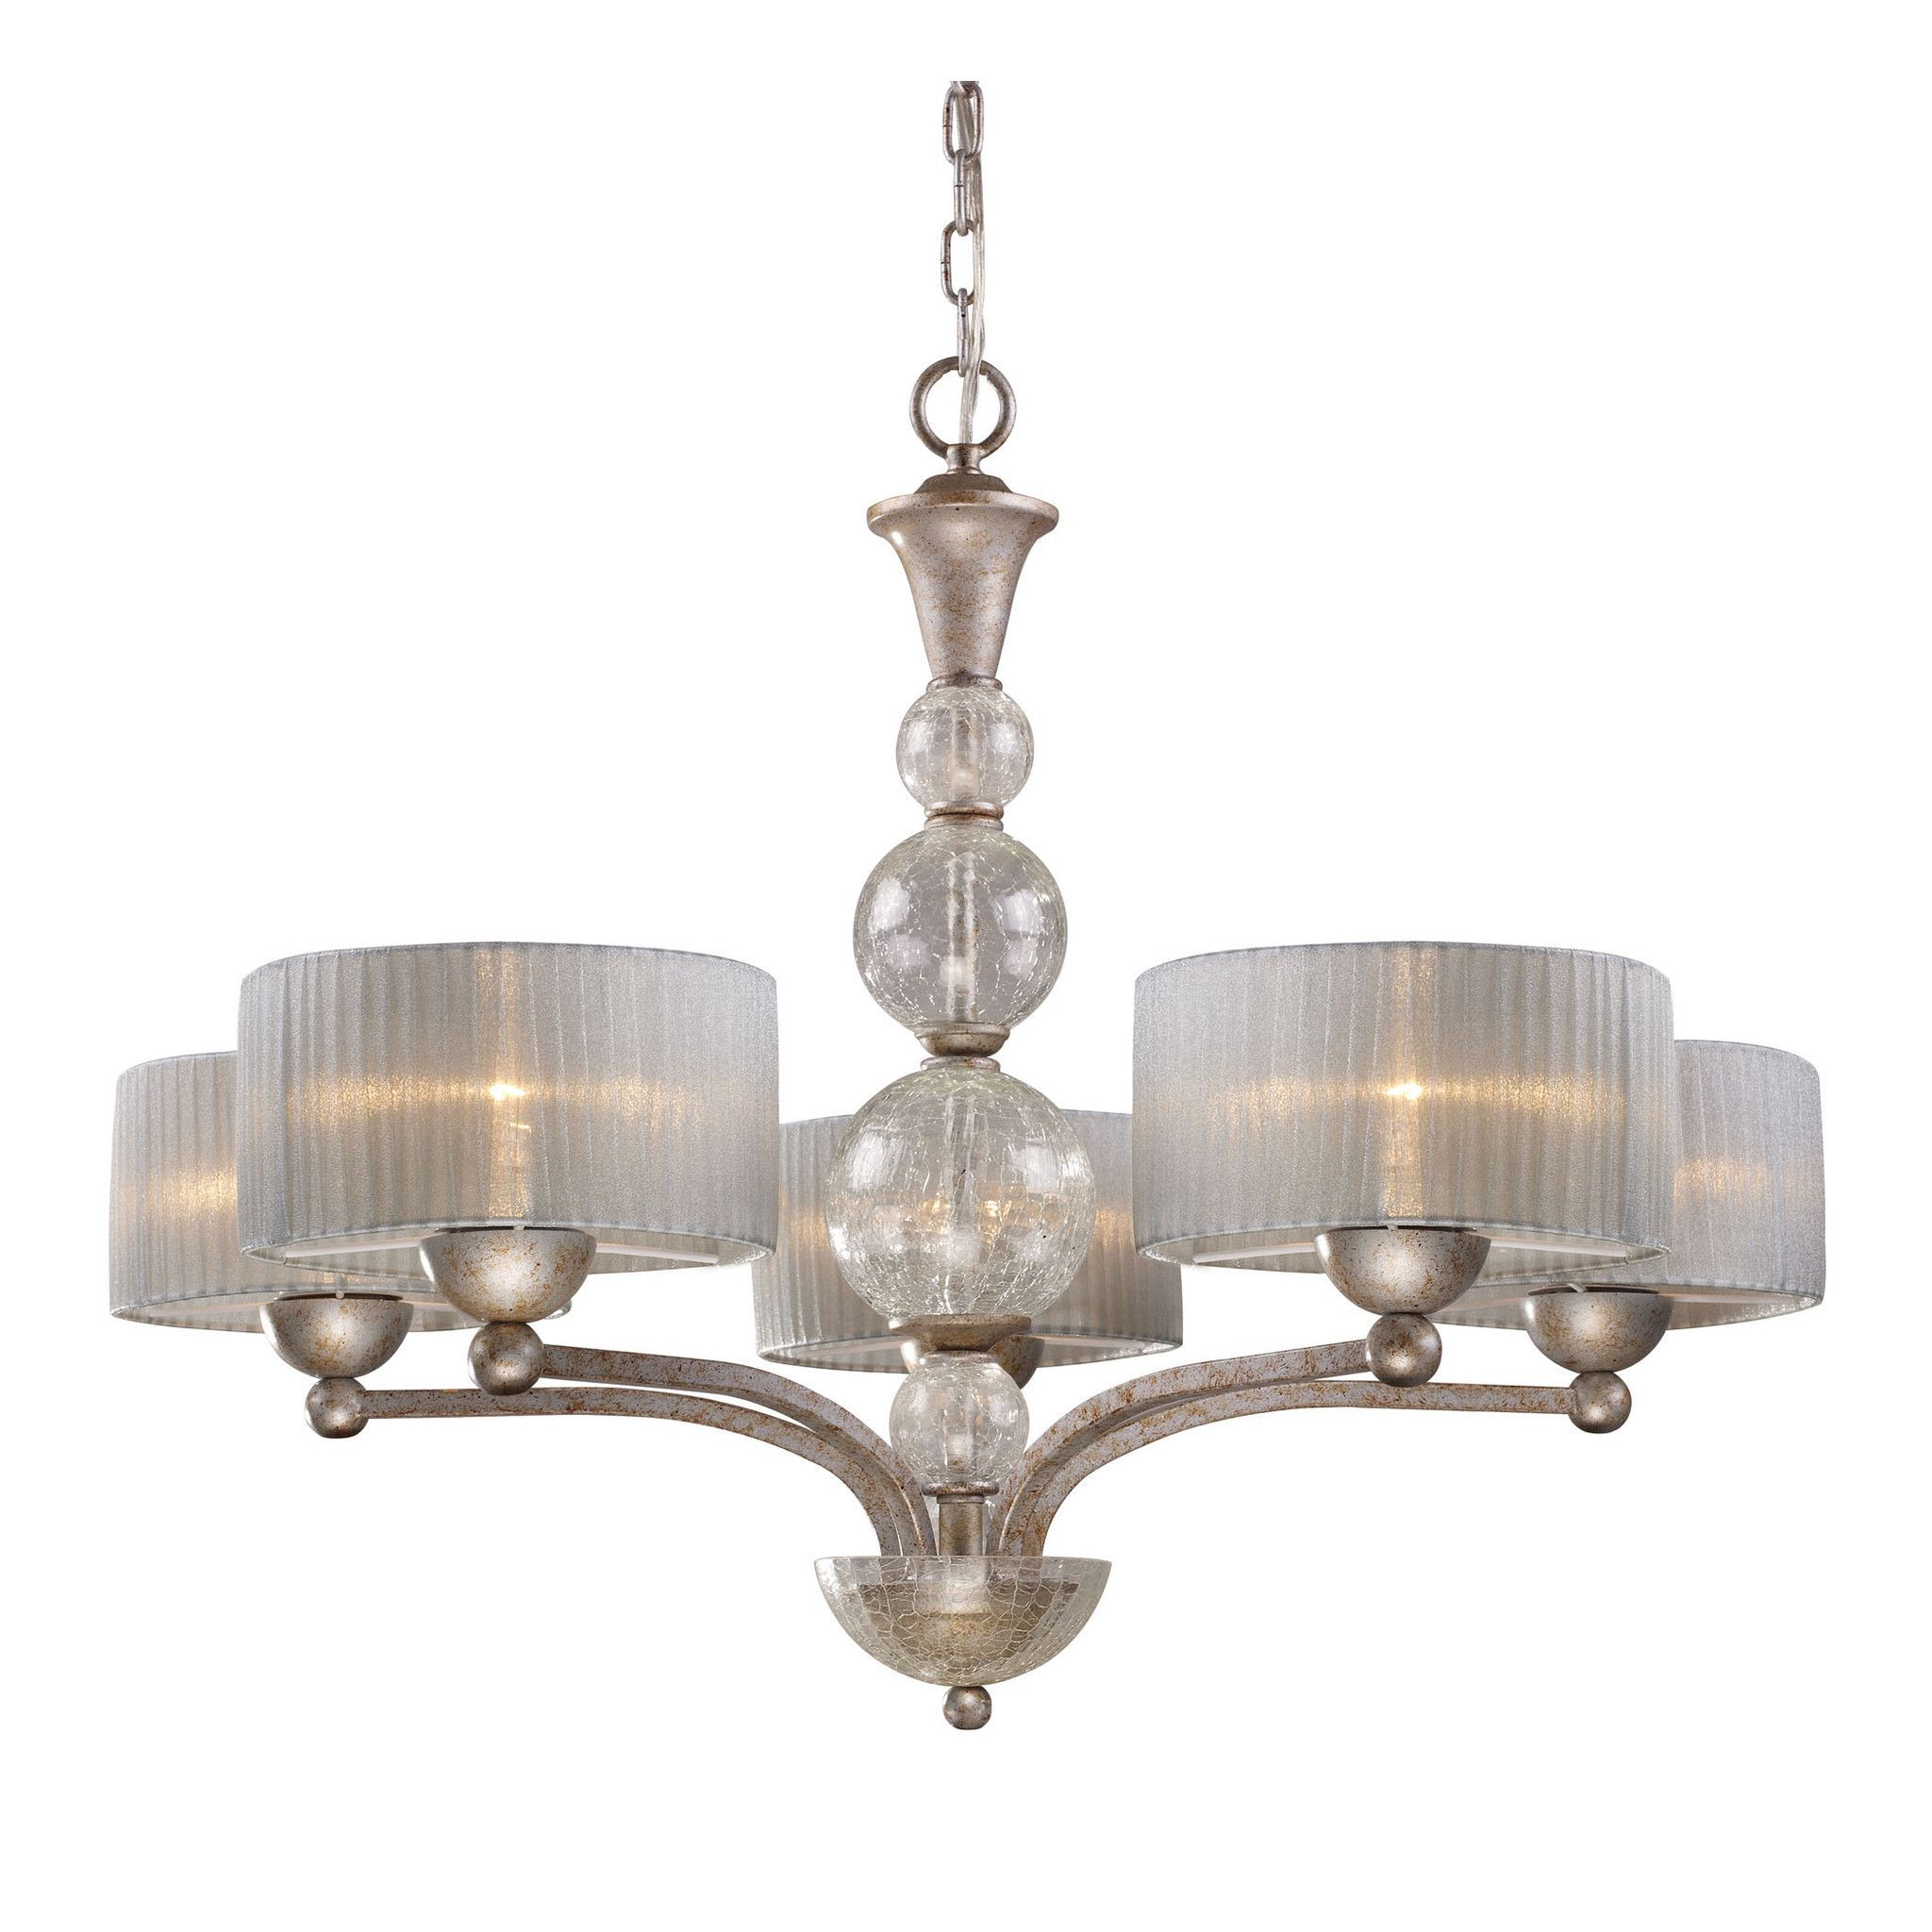 alexis 5 light chandelier in antique silver products pinterest